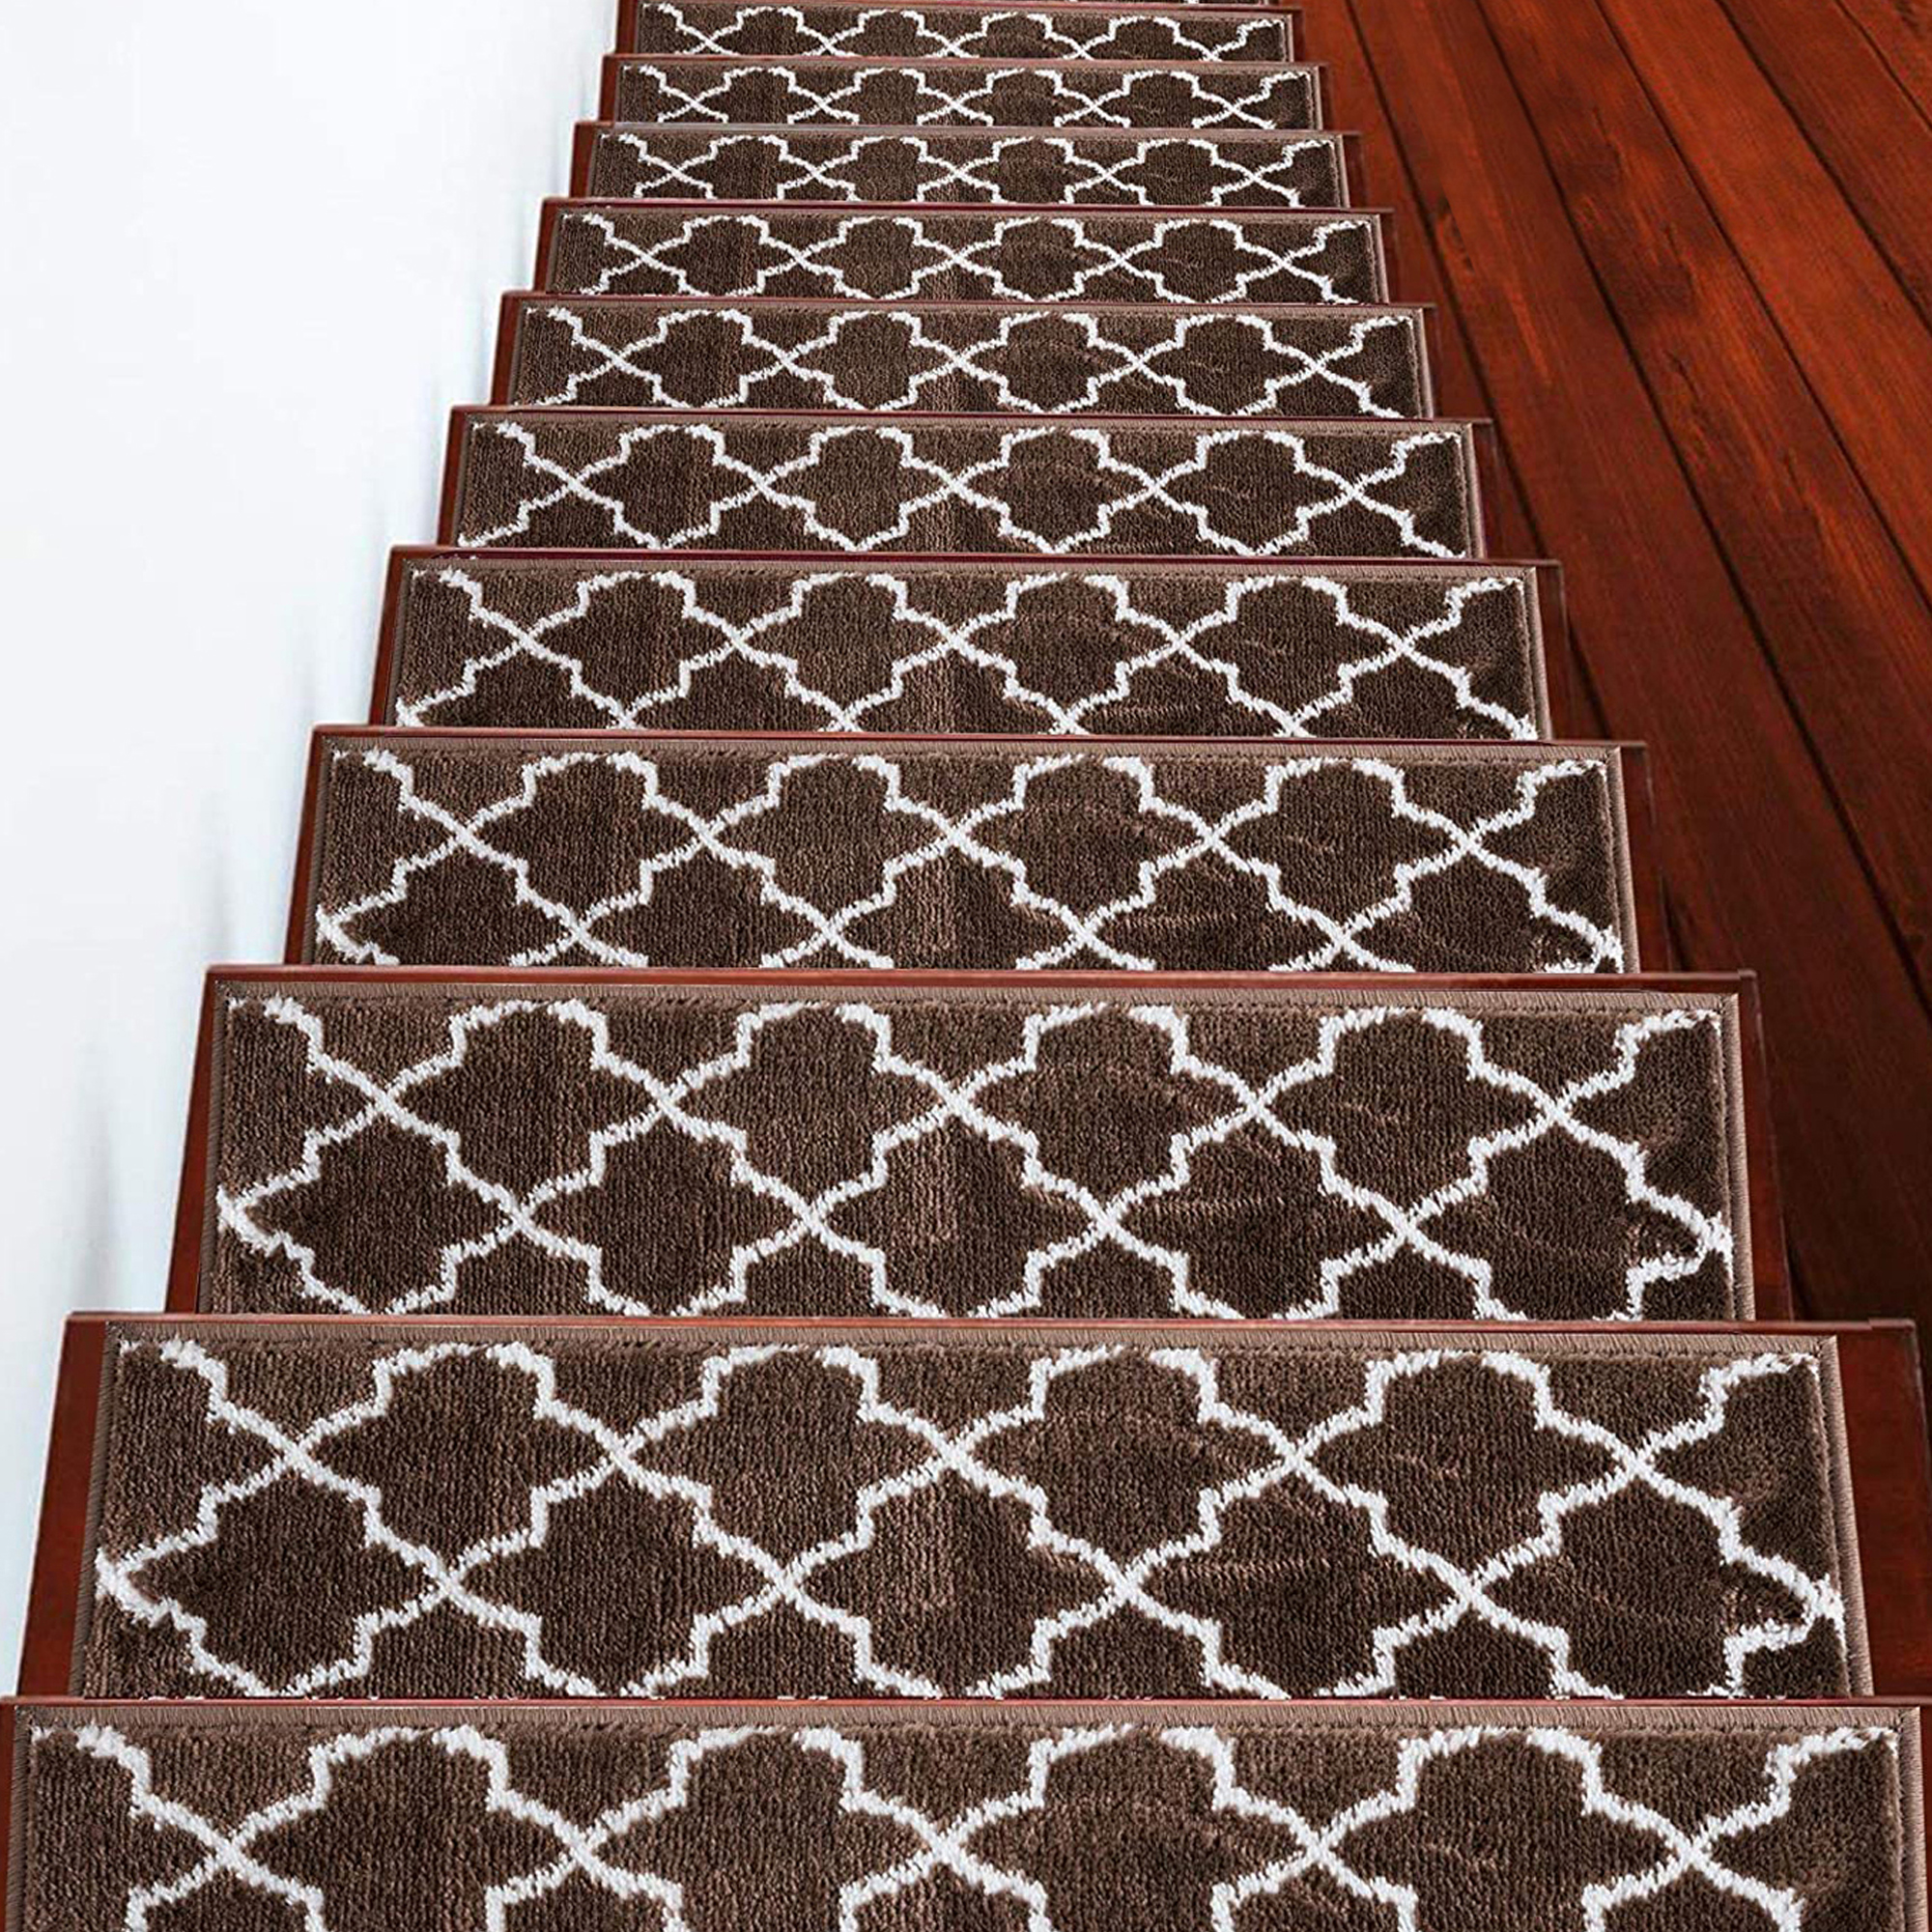 9 x 28 100/% Polypropylene Stair Treads Vintage Collection Contemporary Cozy Pack of 13   Tape Included Vibrant and Soft Stair Treads Red /& White